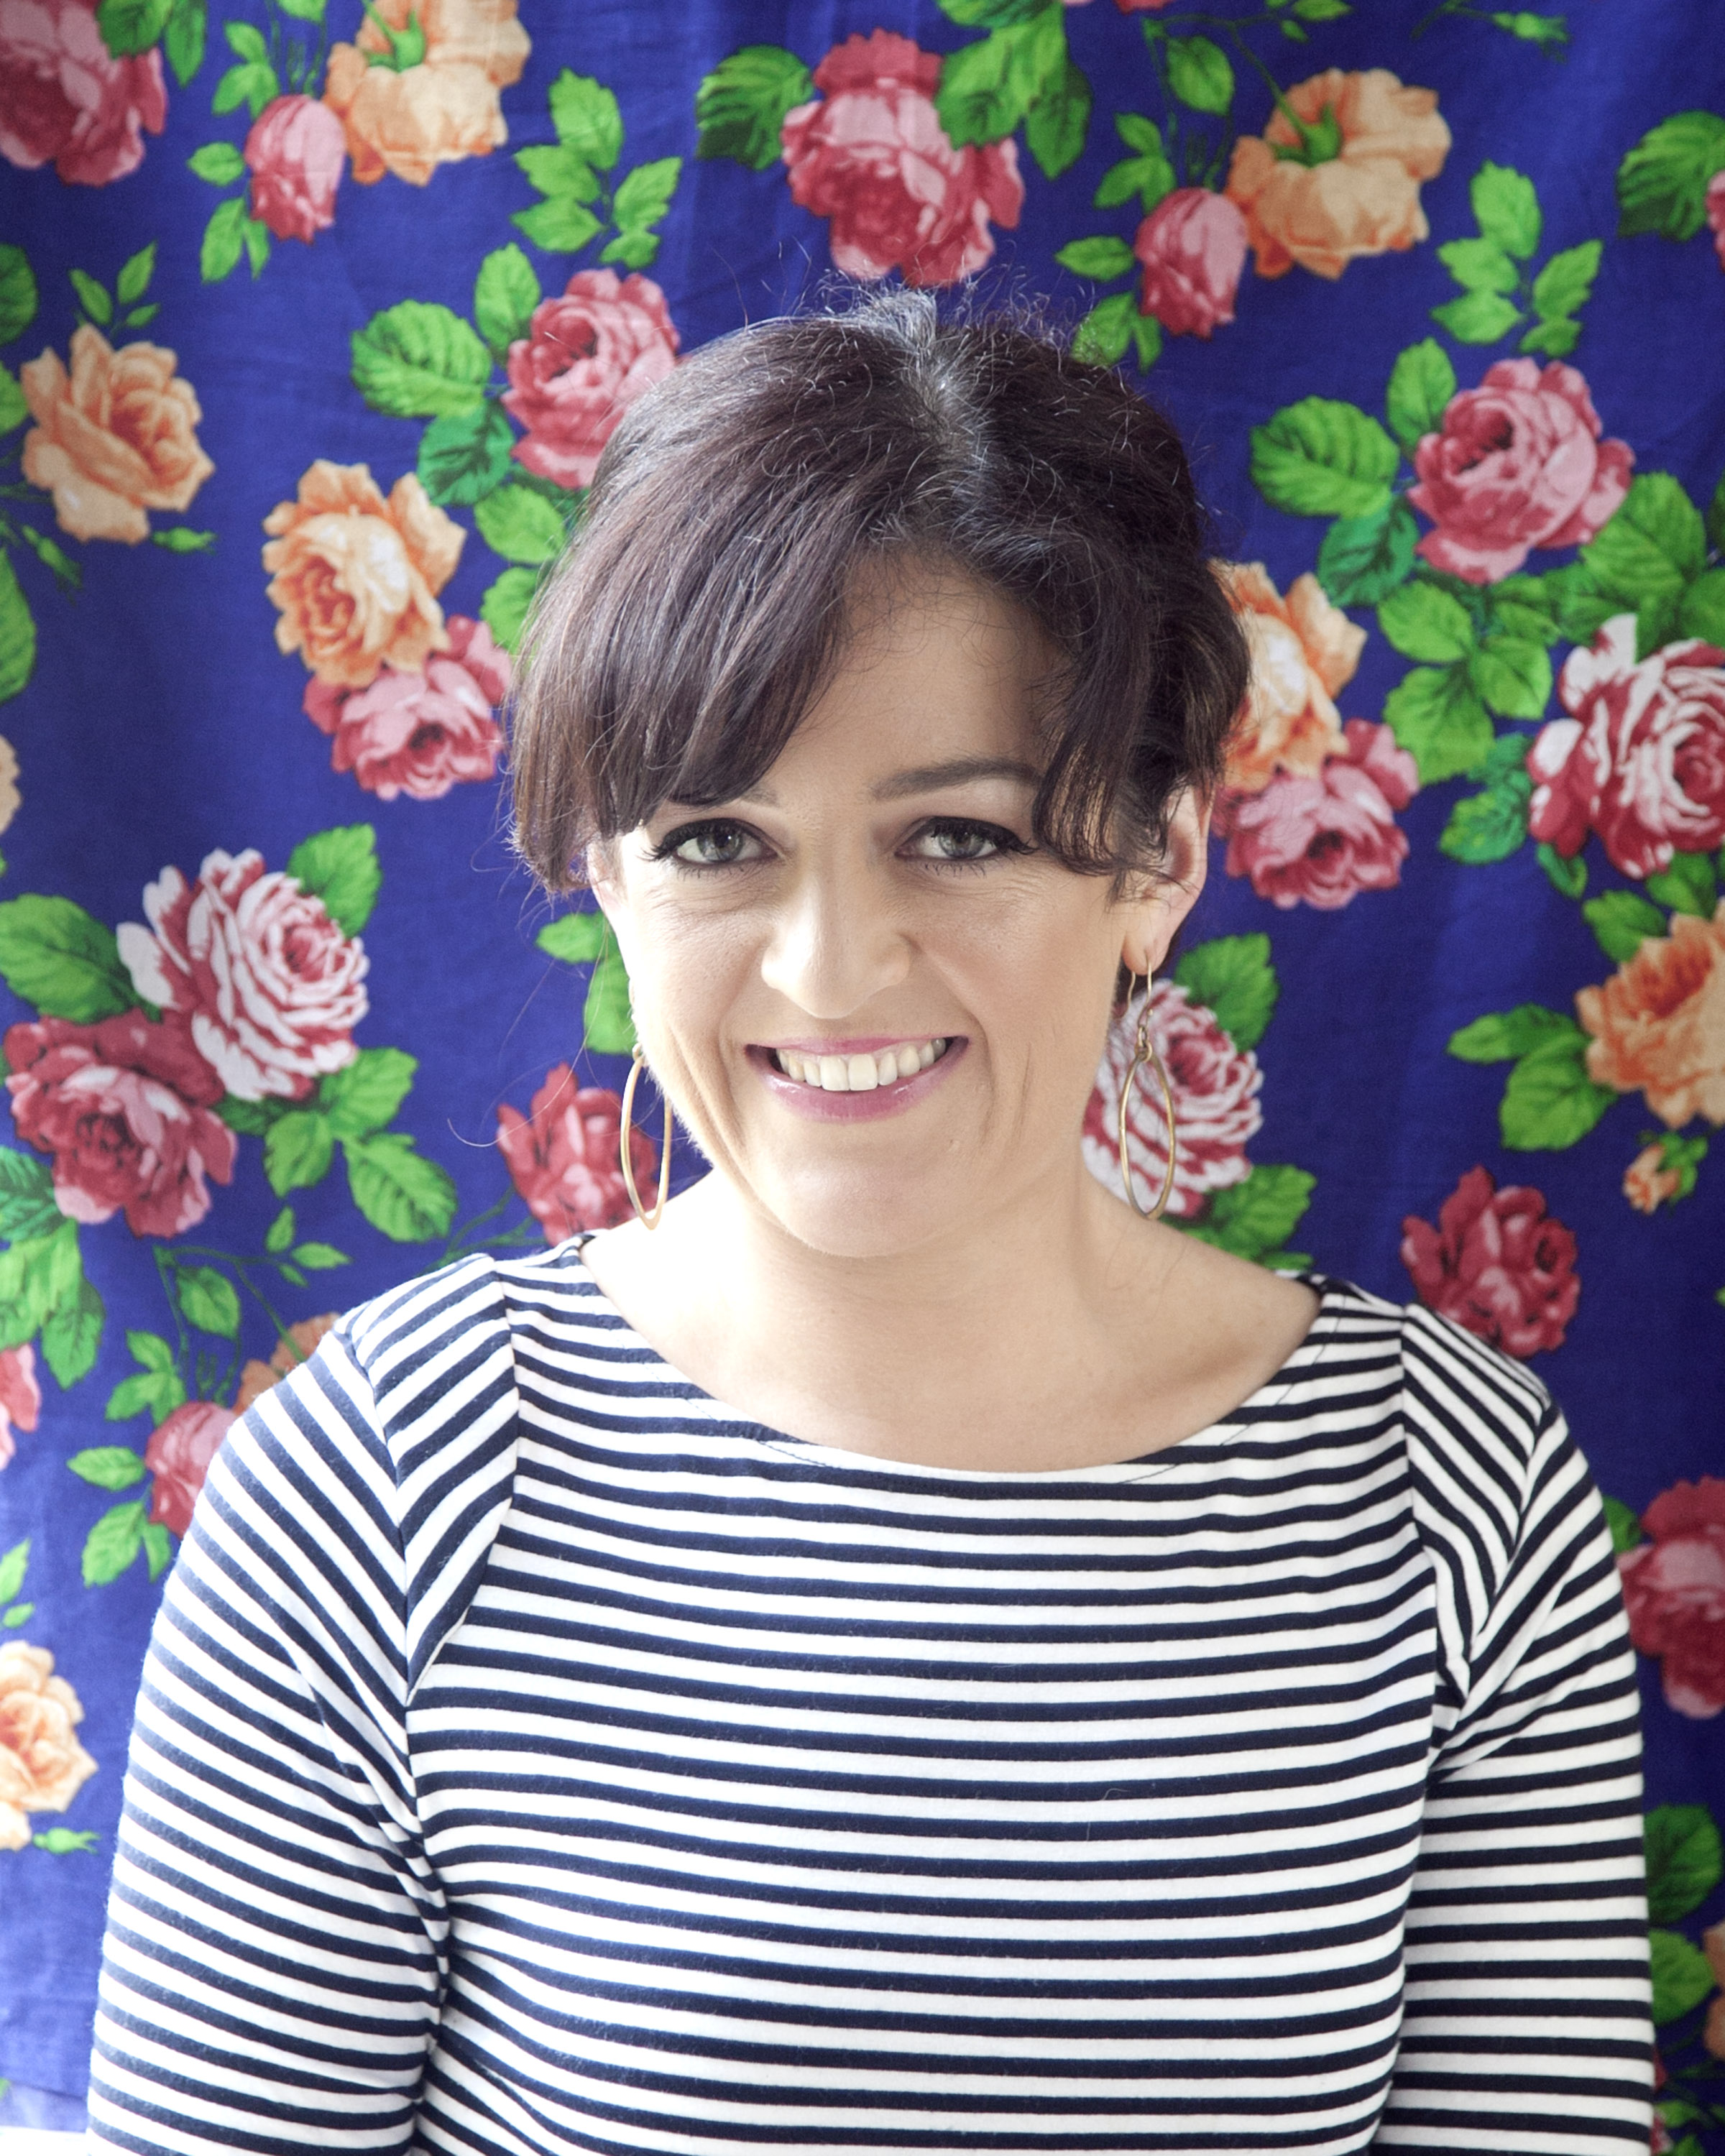 Maeve Higgins - Maeve Higgins is the host of the hit podcast Maeve In America: Immigration IRL. She has performed all over the world, including in her native Ireland, Edinburgh, Melbourne and, most recently, Erbil. Now based in New York, she's made a name for herself there too. In a good way! She co-hosts Neil deGrasse Tyson's StarTalk on National Geographic and has appeared in Comedy Central's Inside Amy Schumer. Her work has been published in The New York Times and The Irish Times, and she is writing a book of essays for Penguin due for publication later this year.